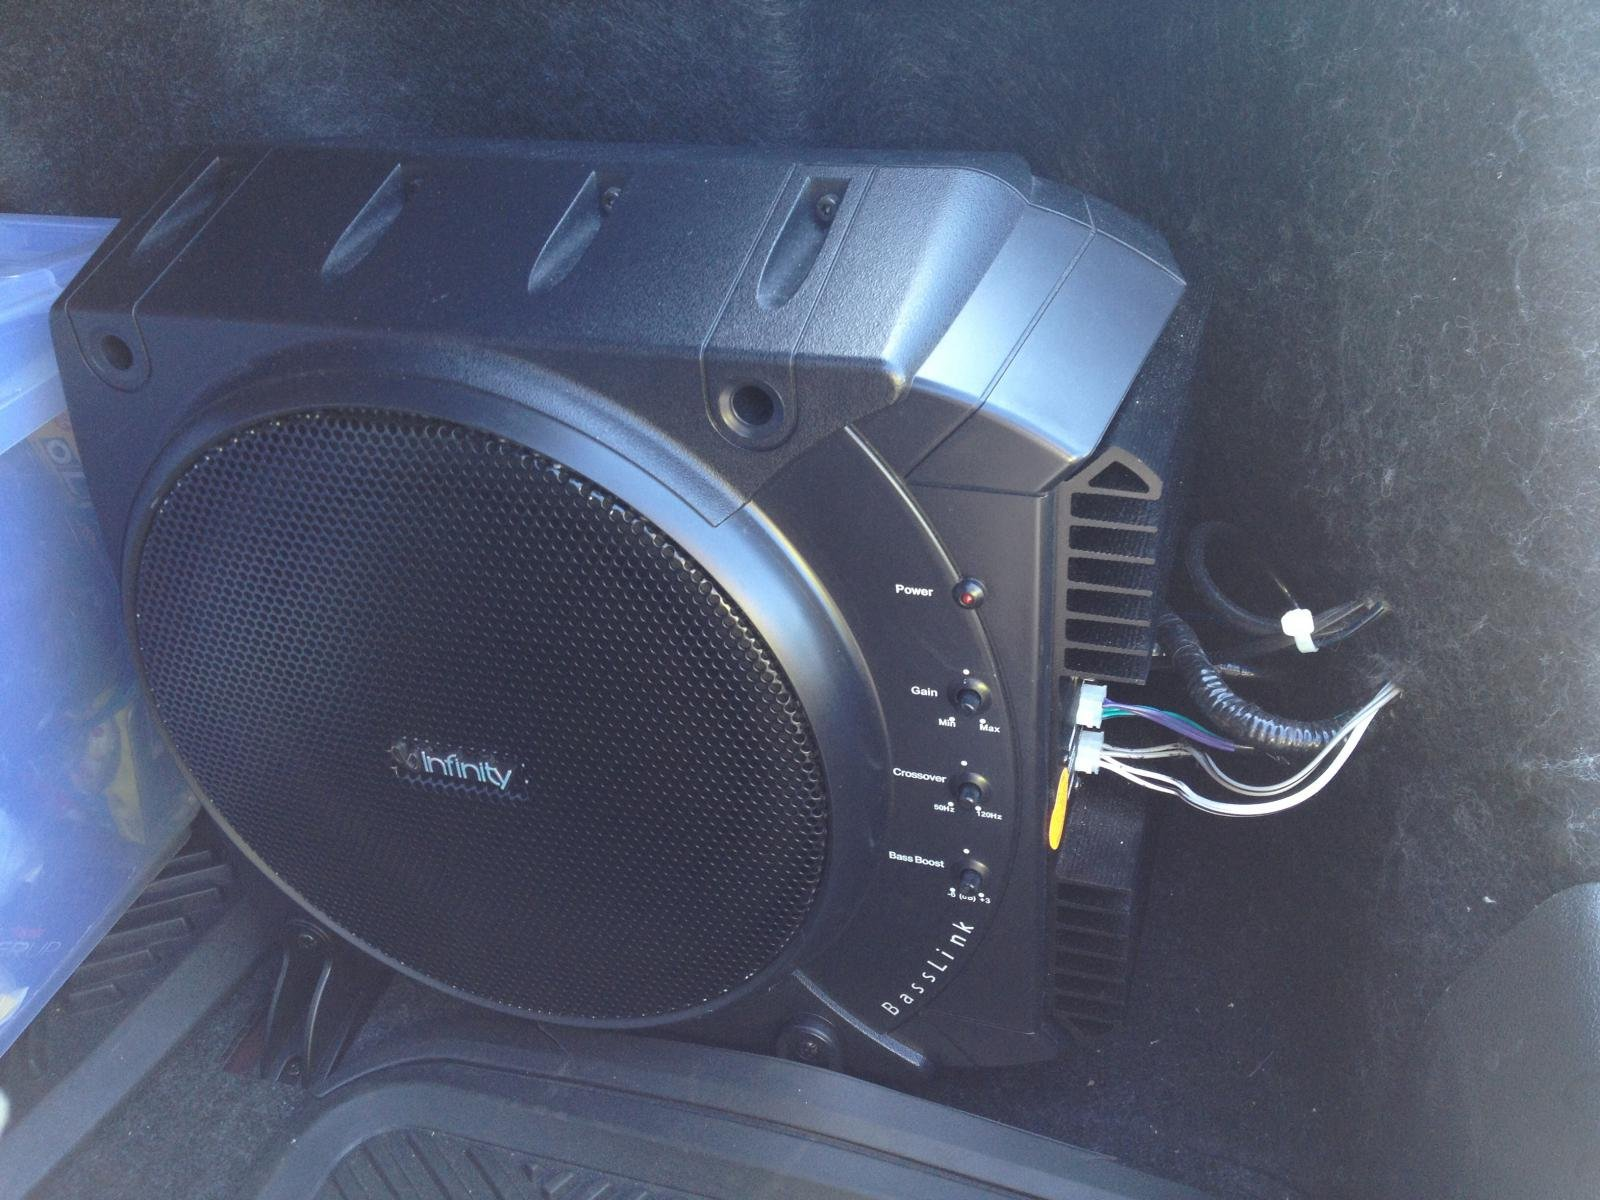 Powered Sub Wiring Diagram Portal Ohm Subwoofer Likewise Dual Voice Coil Speaker Infinity Self Install 2014 Si Stereo Amp